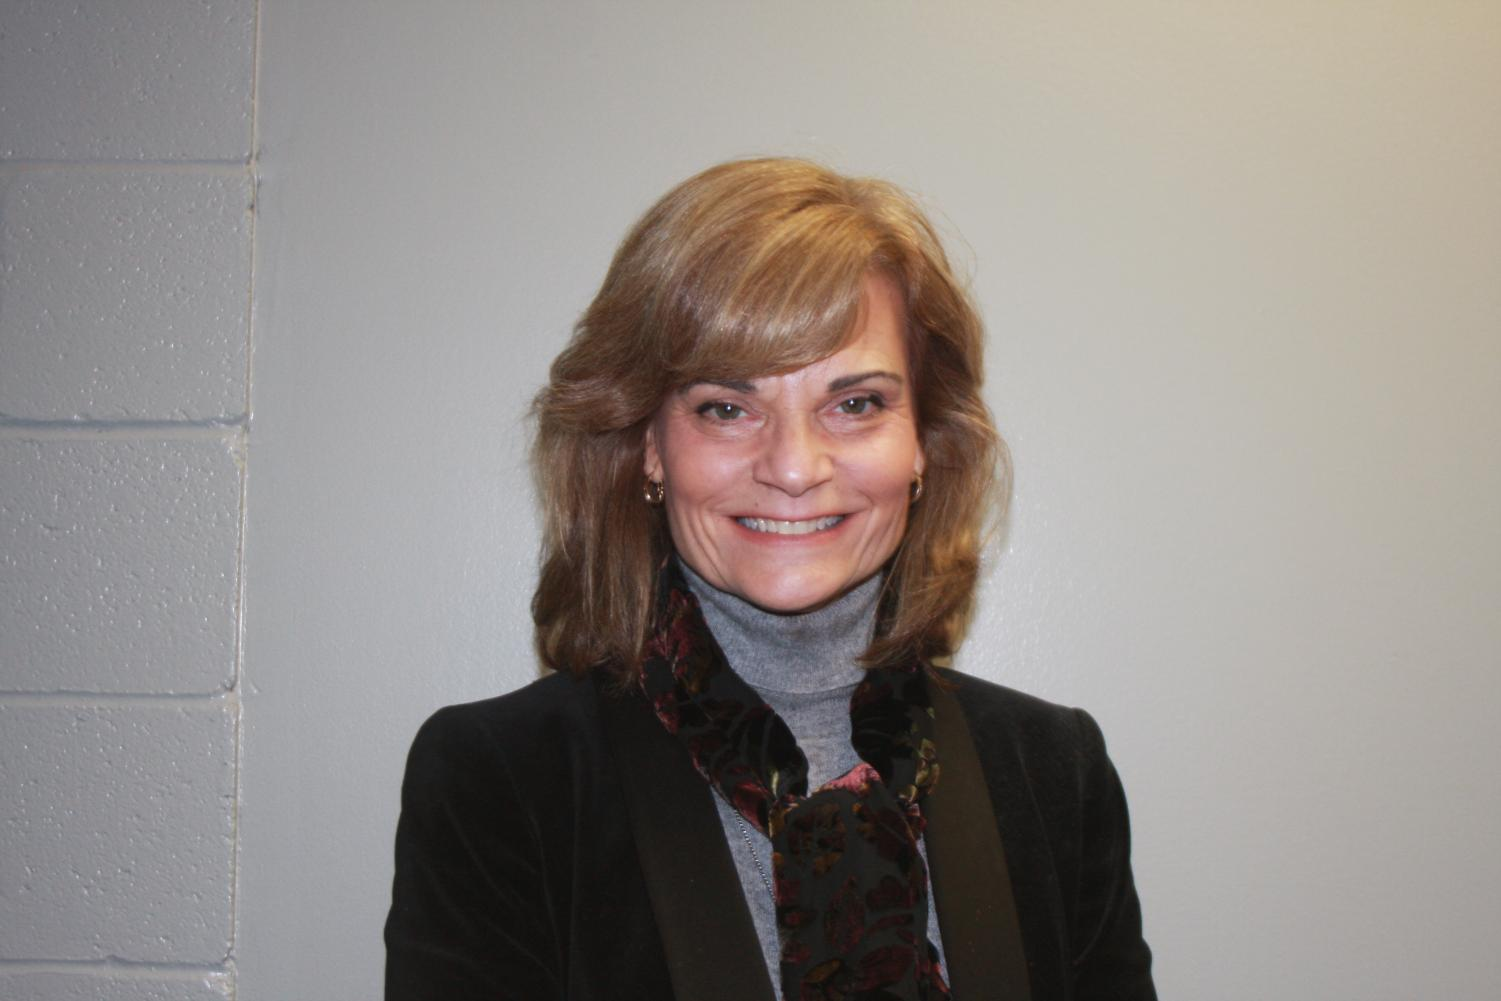 We get to know Dr. Laurie Bandlow, our new Superintendent.